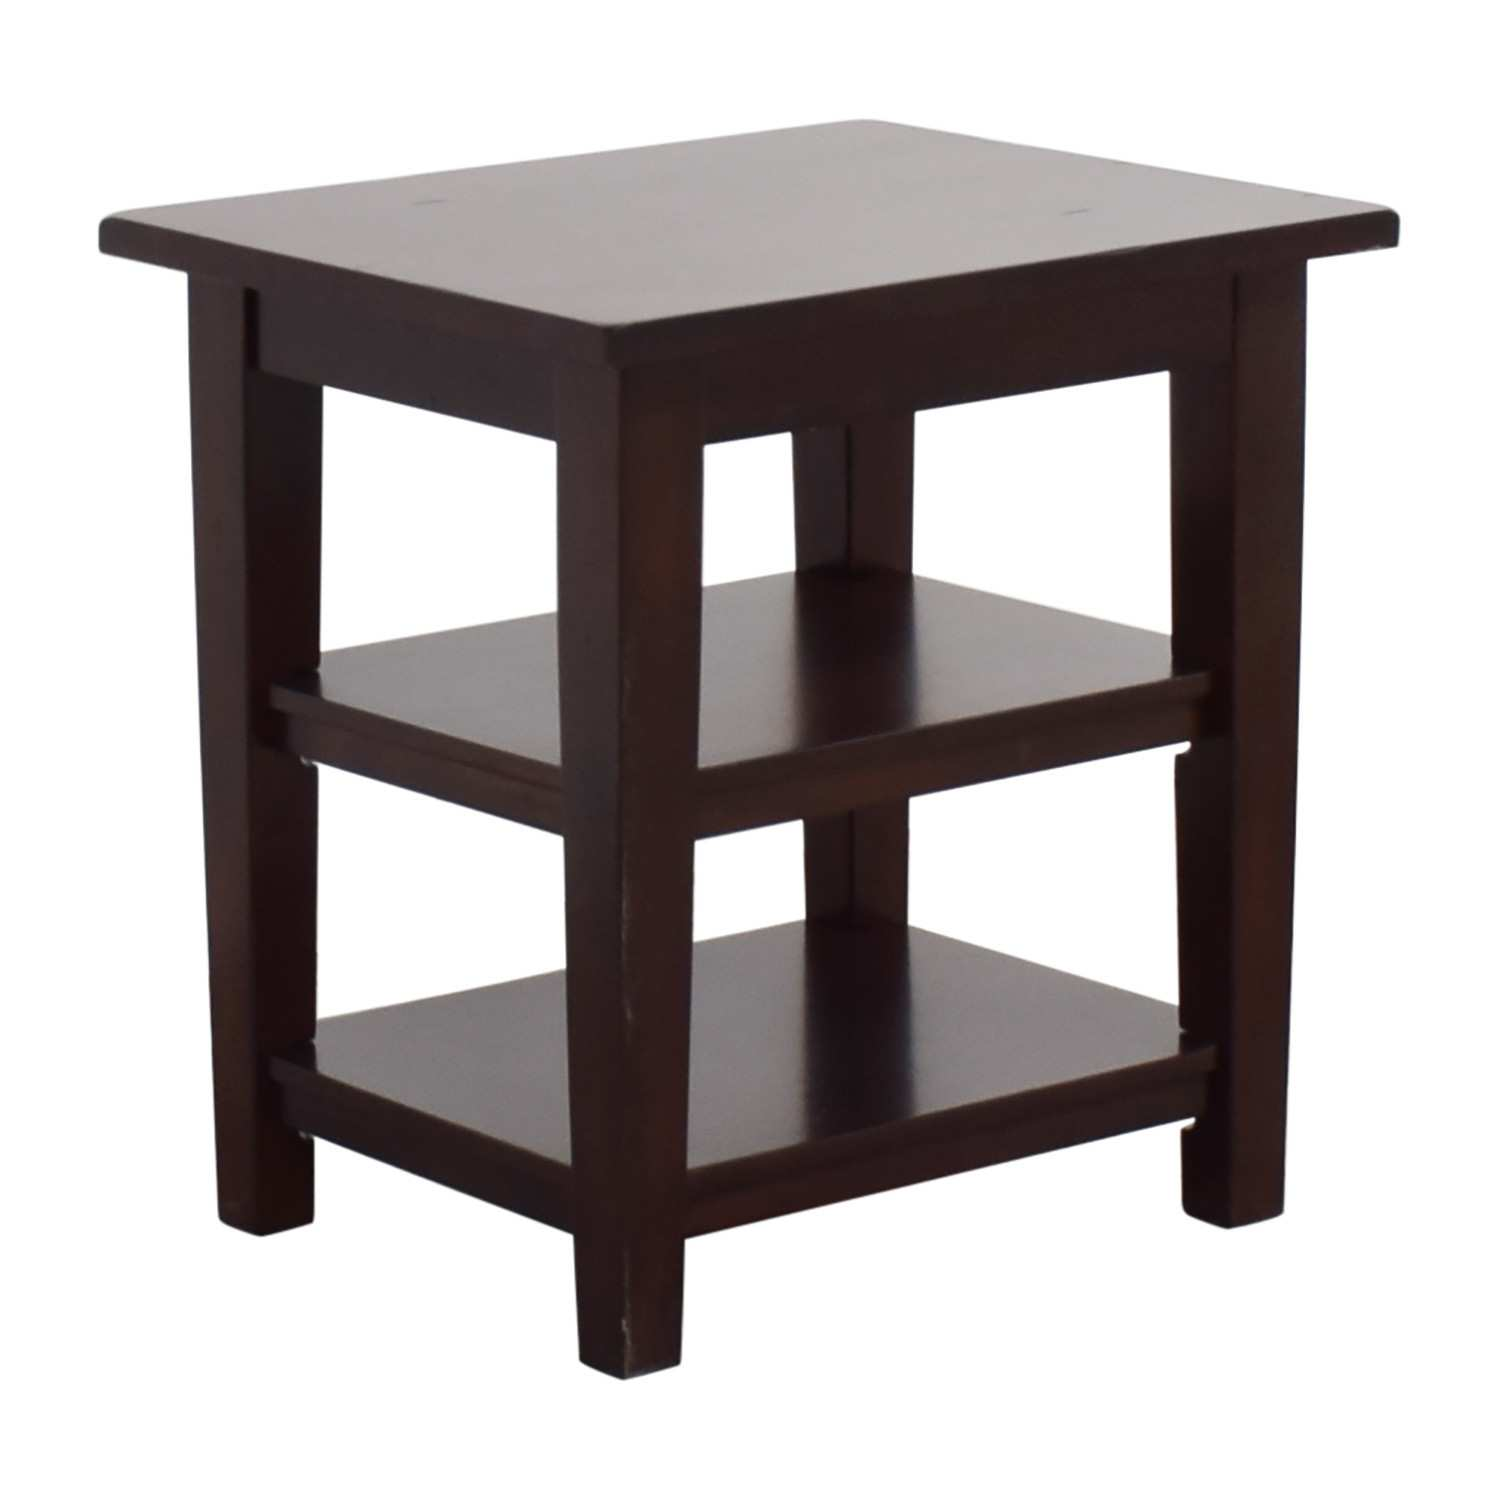 best tures about pier one accent tables table ideas lovely for off wooden end kenzie outdoor furniture console mirrors half round top drawer dishwasher black telephone concrete